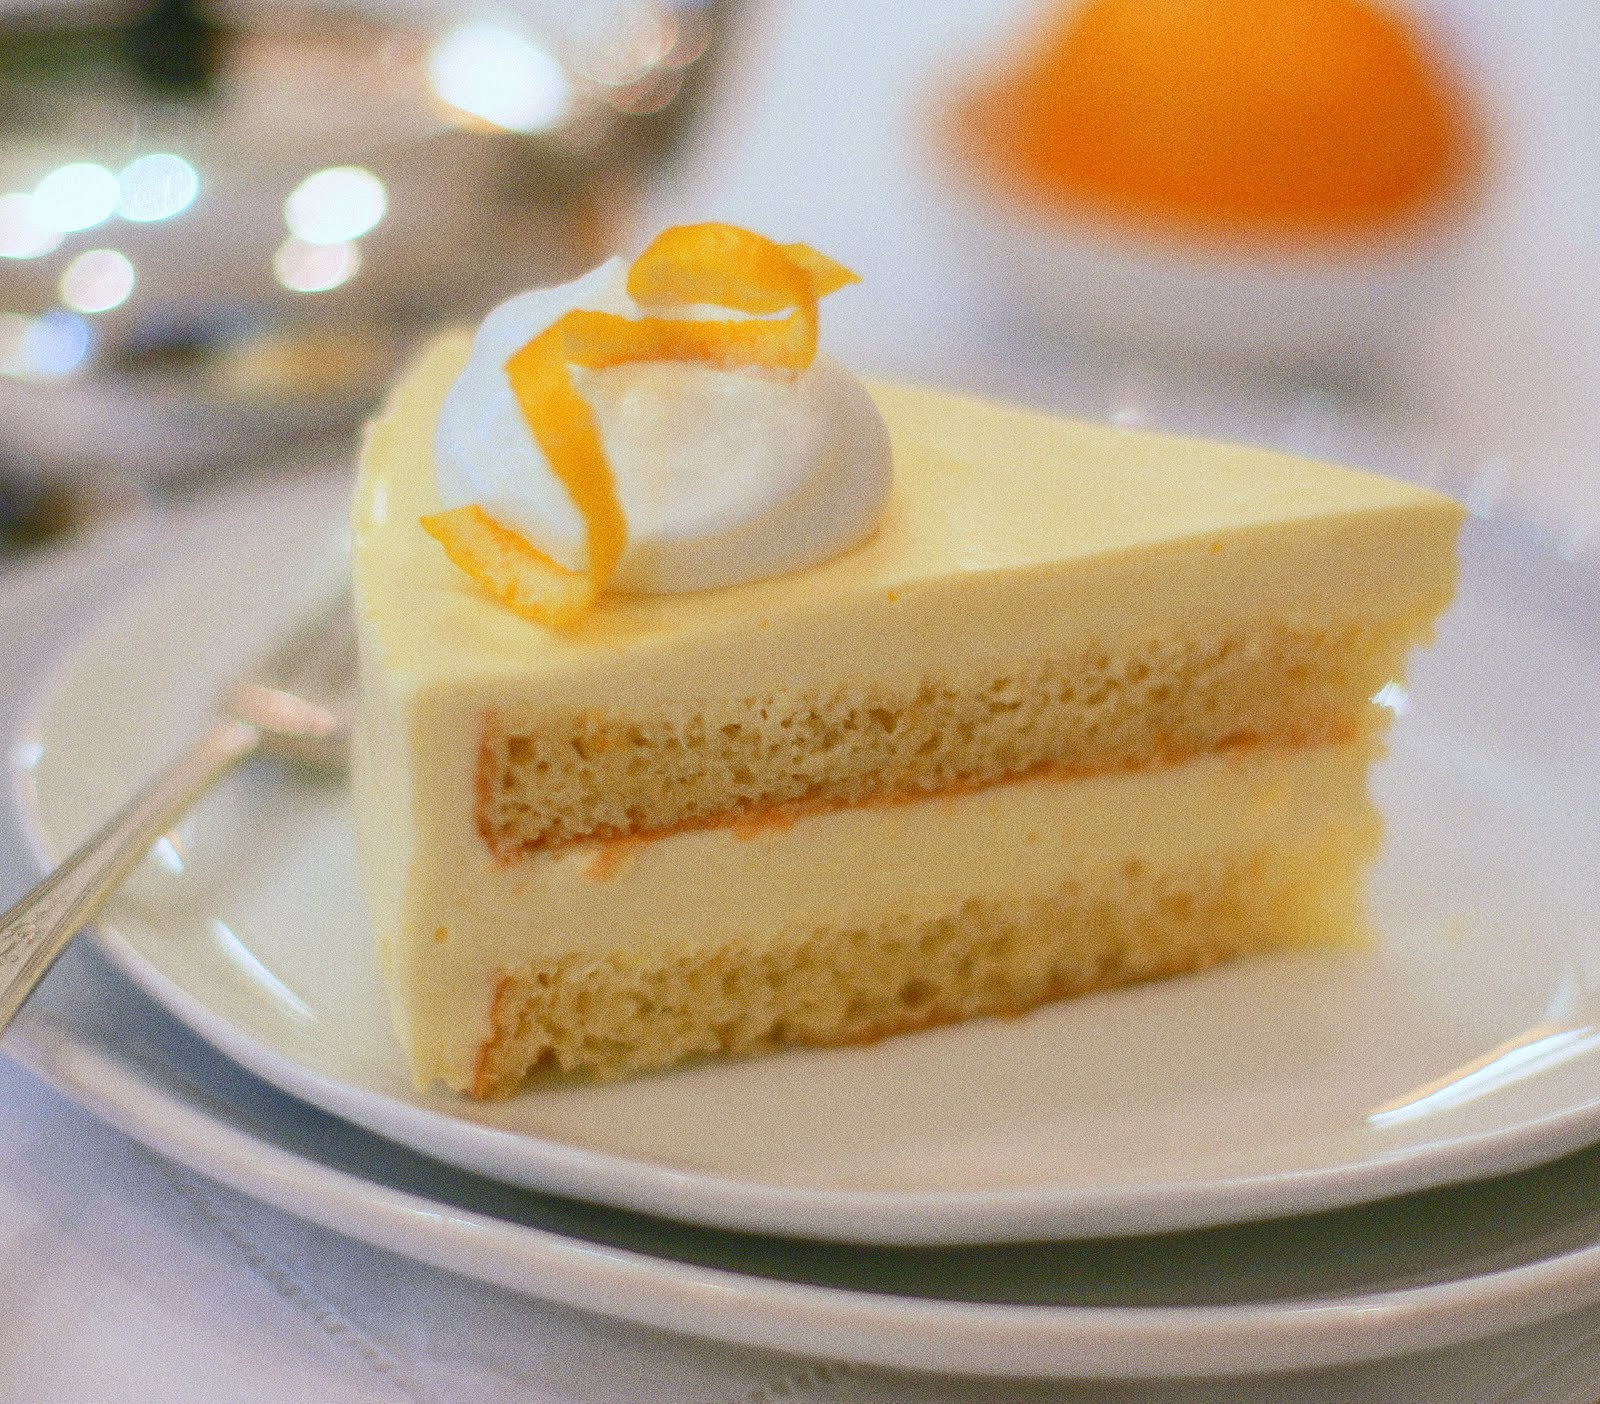 How To Make Orange Sponge Cake